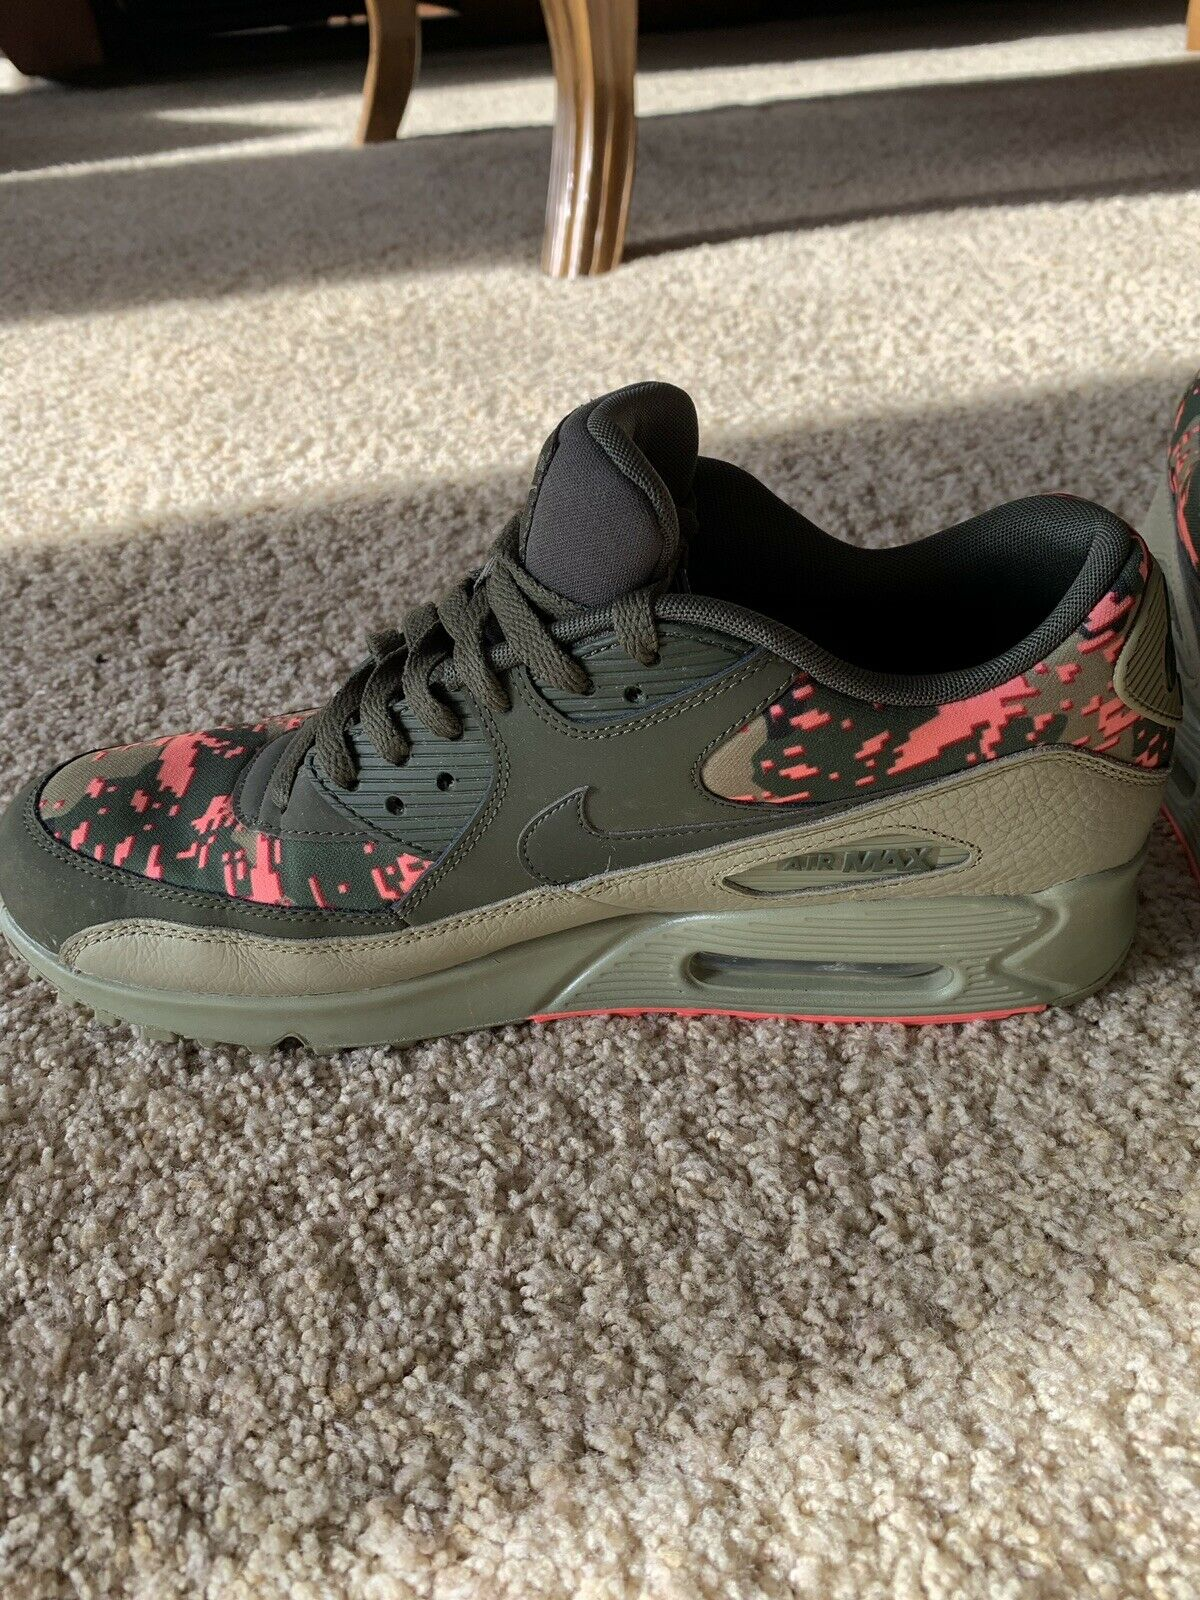 Nike Air Max shoes - Size 11.5